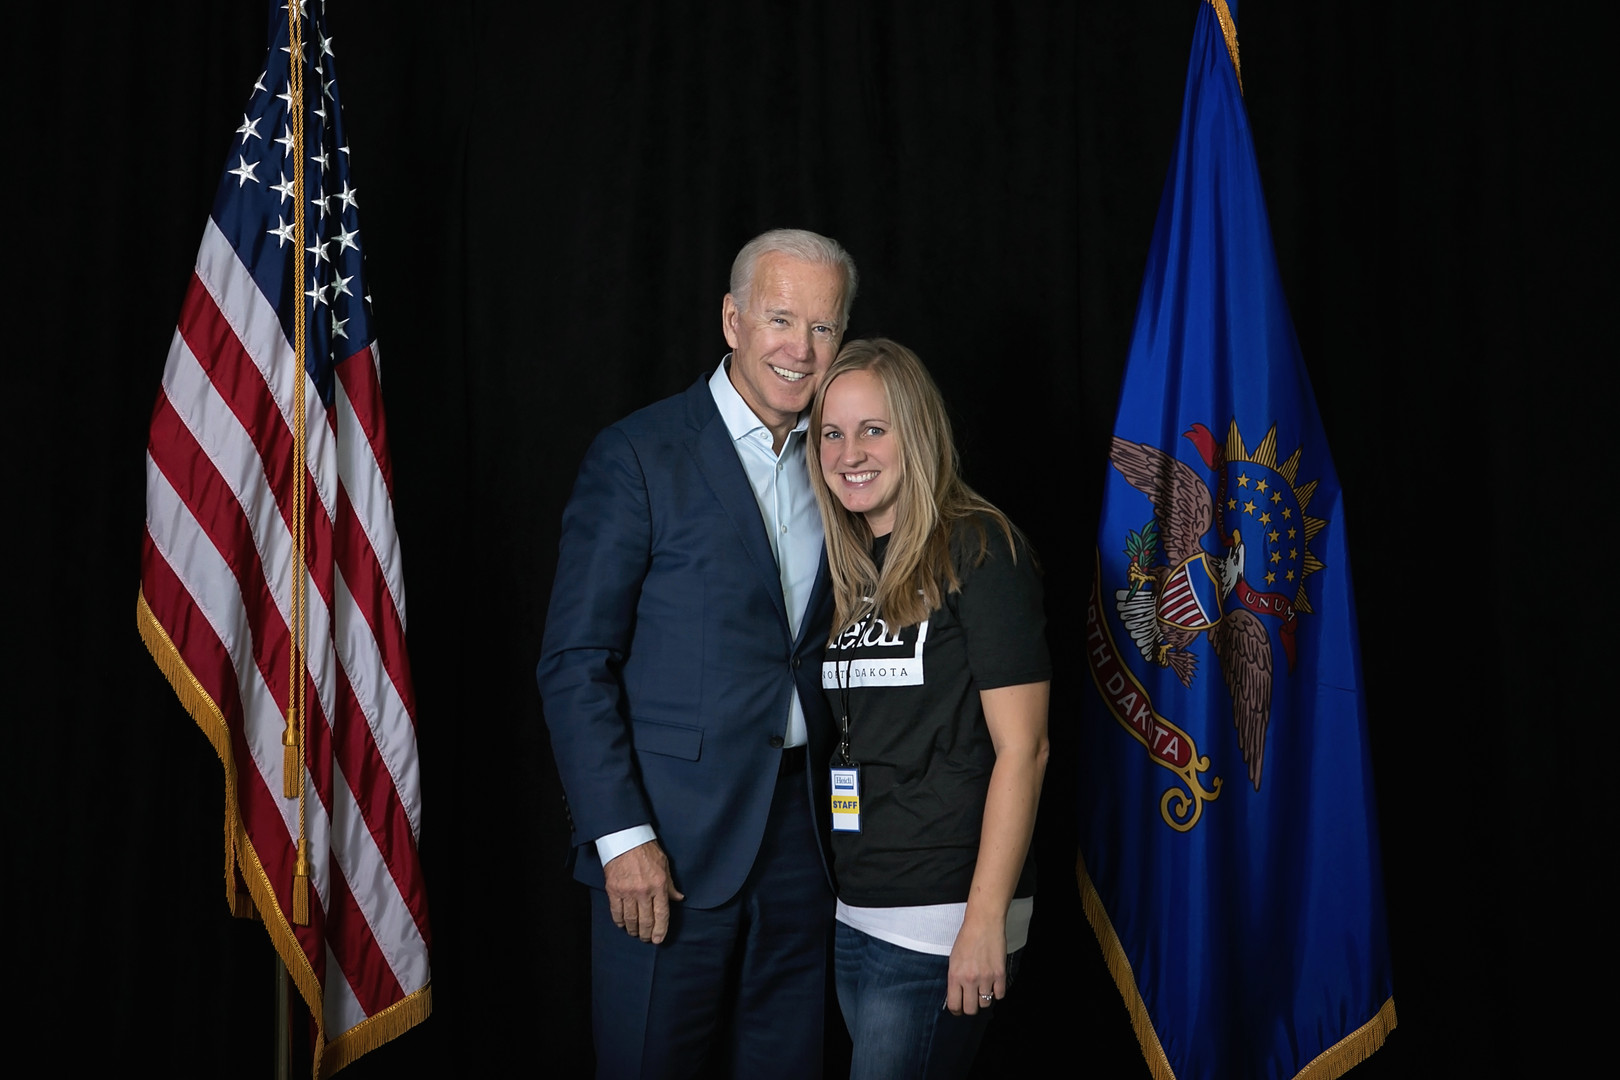 Kari with Joe Biden in 2018